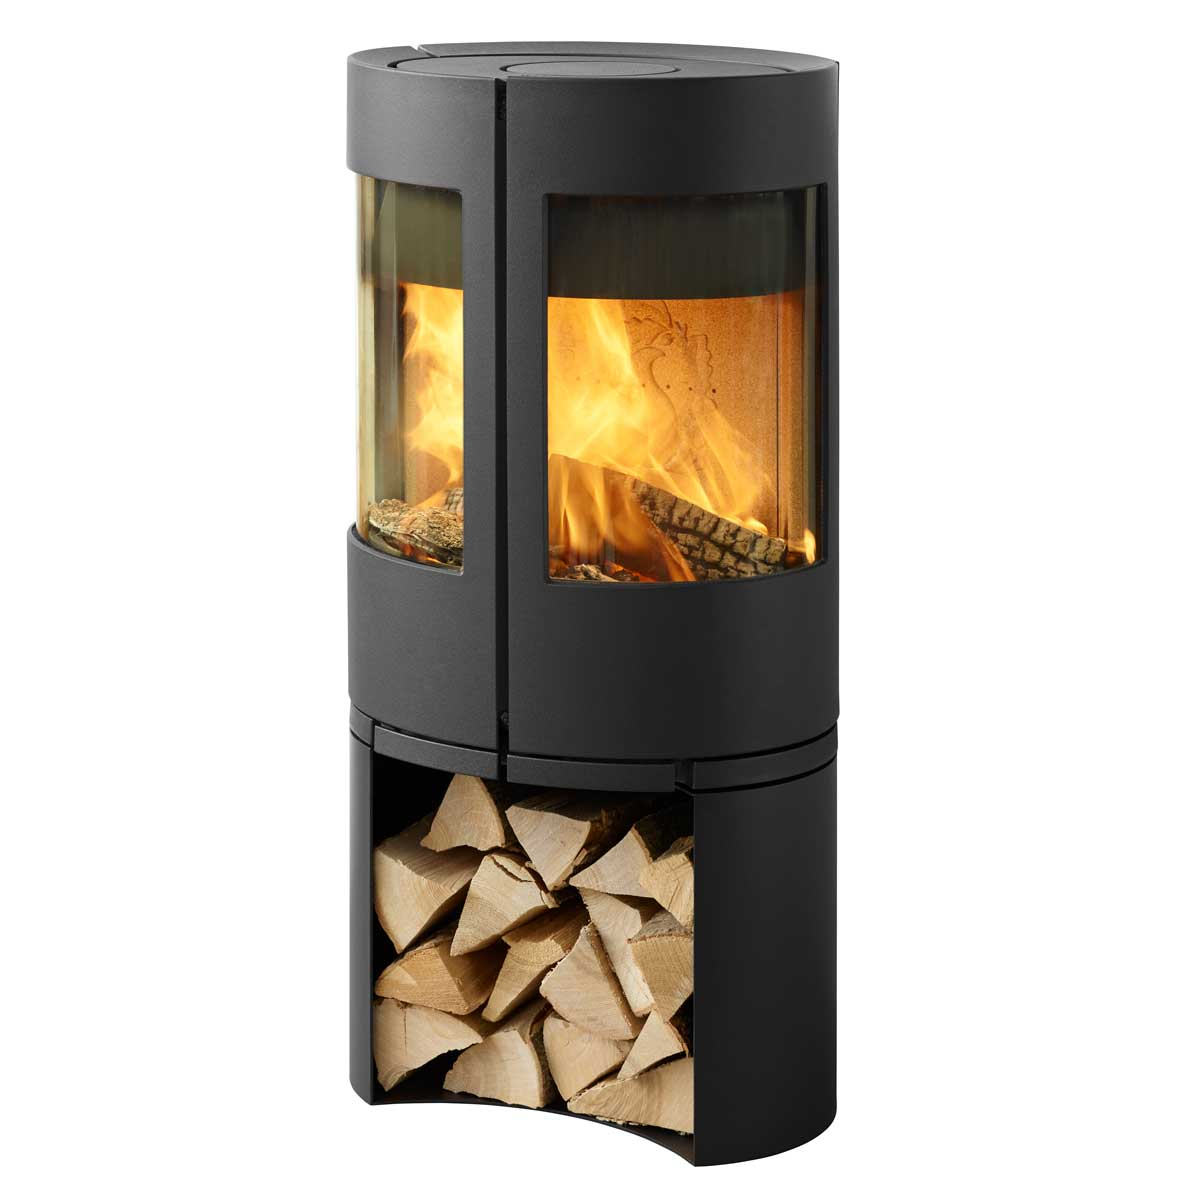 Morso 6643 freestanding wood fire with timber storage underneath